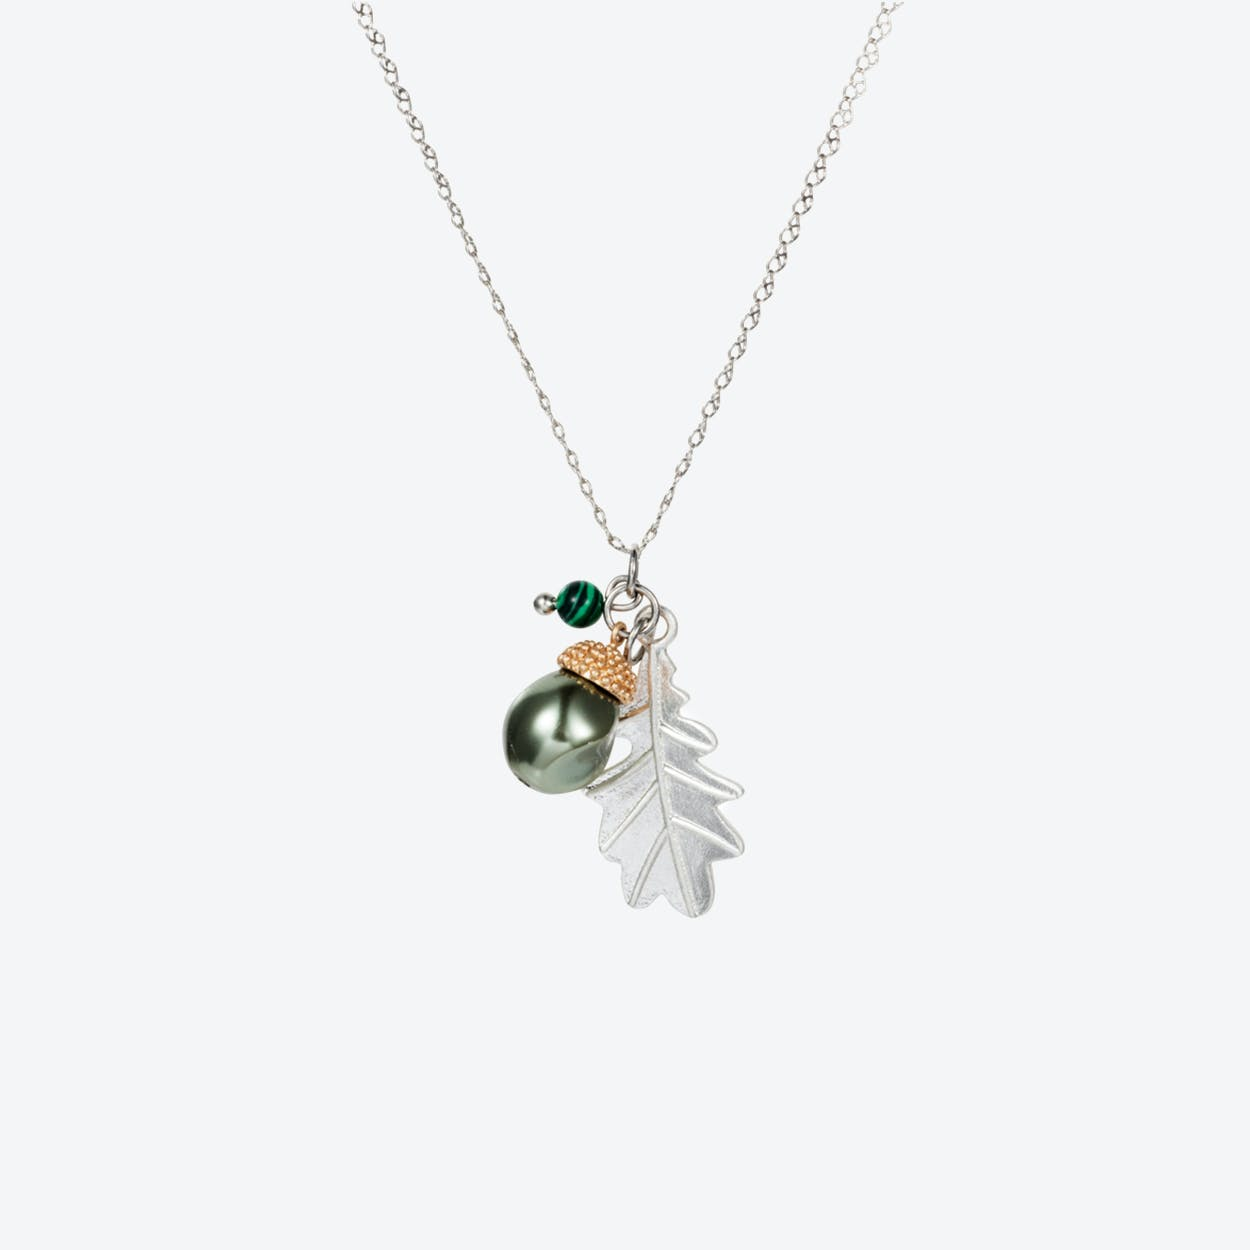 Acorn Charm Necklace – Silver with Baroque Pearl & Malachite